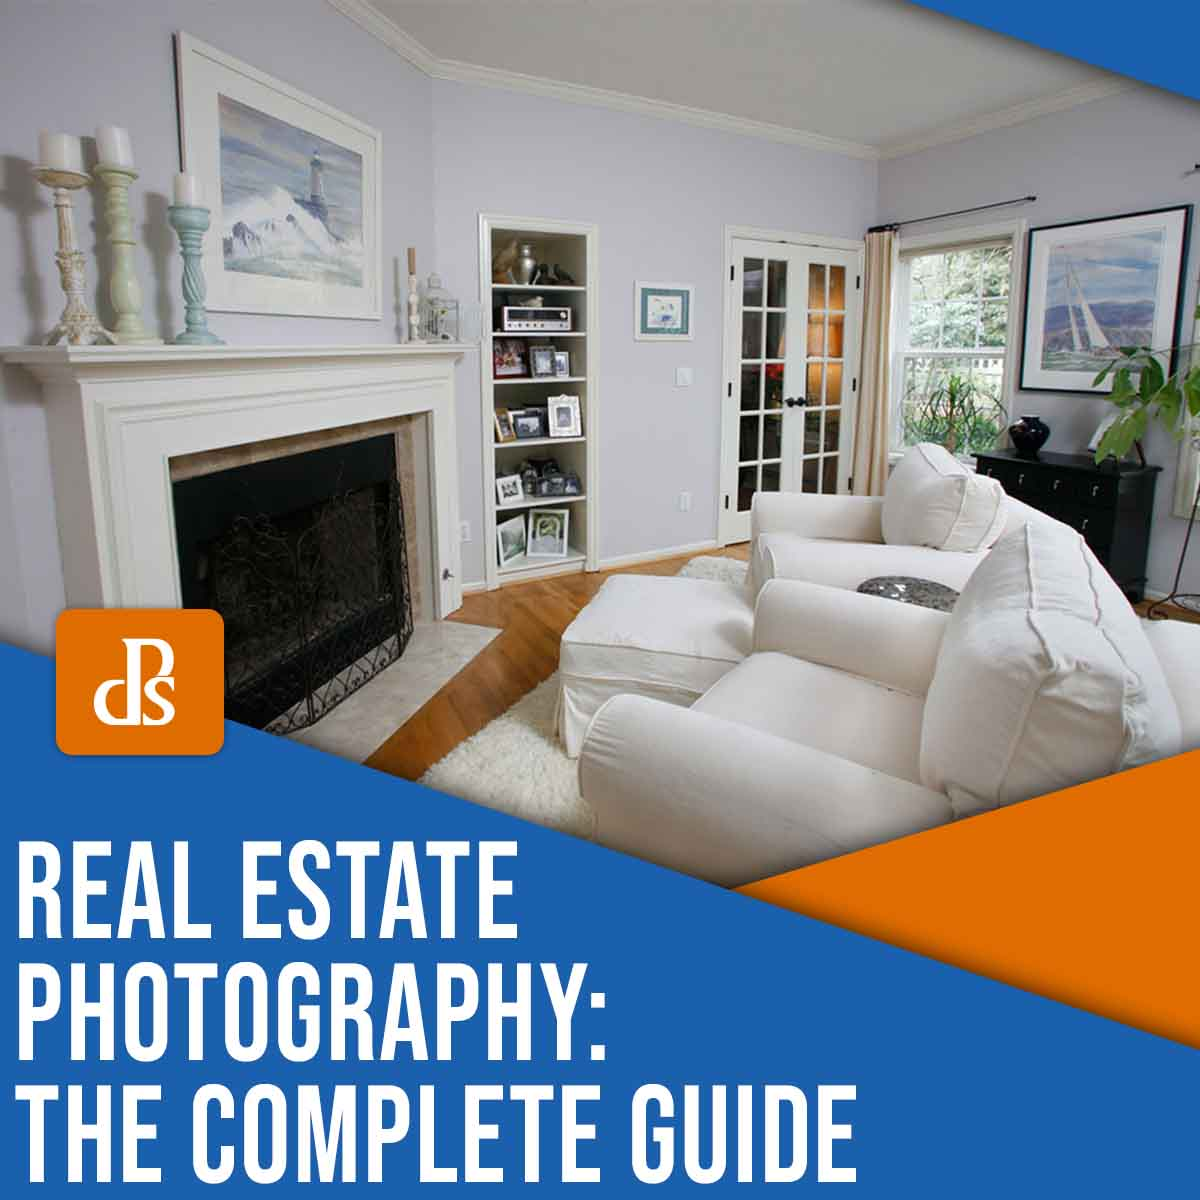 Real Estate Photography: The Complete Guide